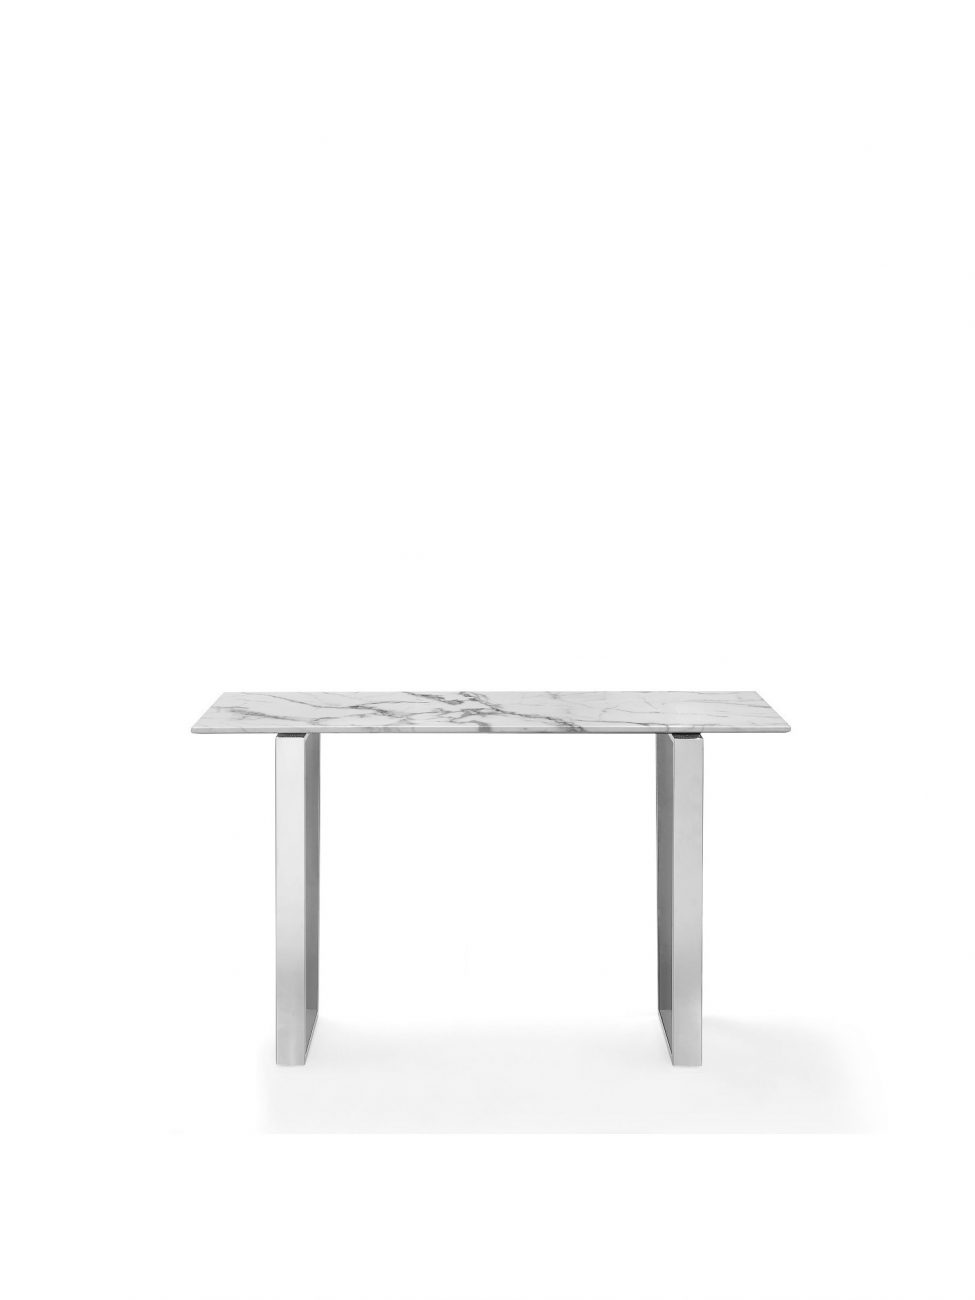 marble console table Chrome Legs